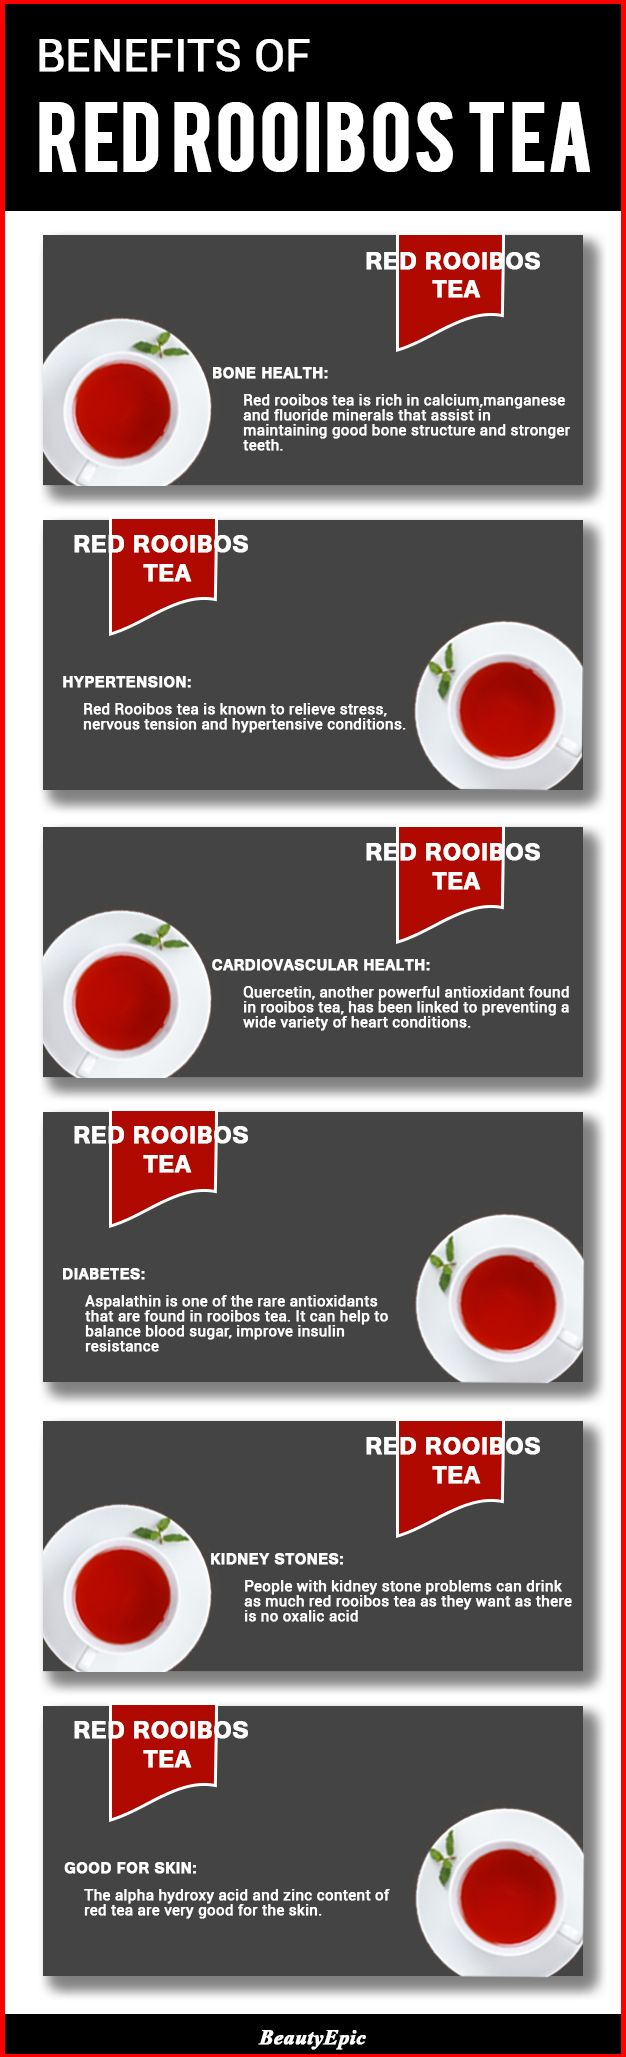 50 Health Benefits of Red Rooibos Tea